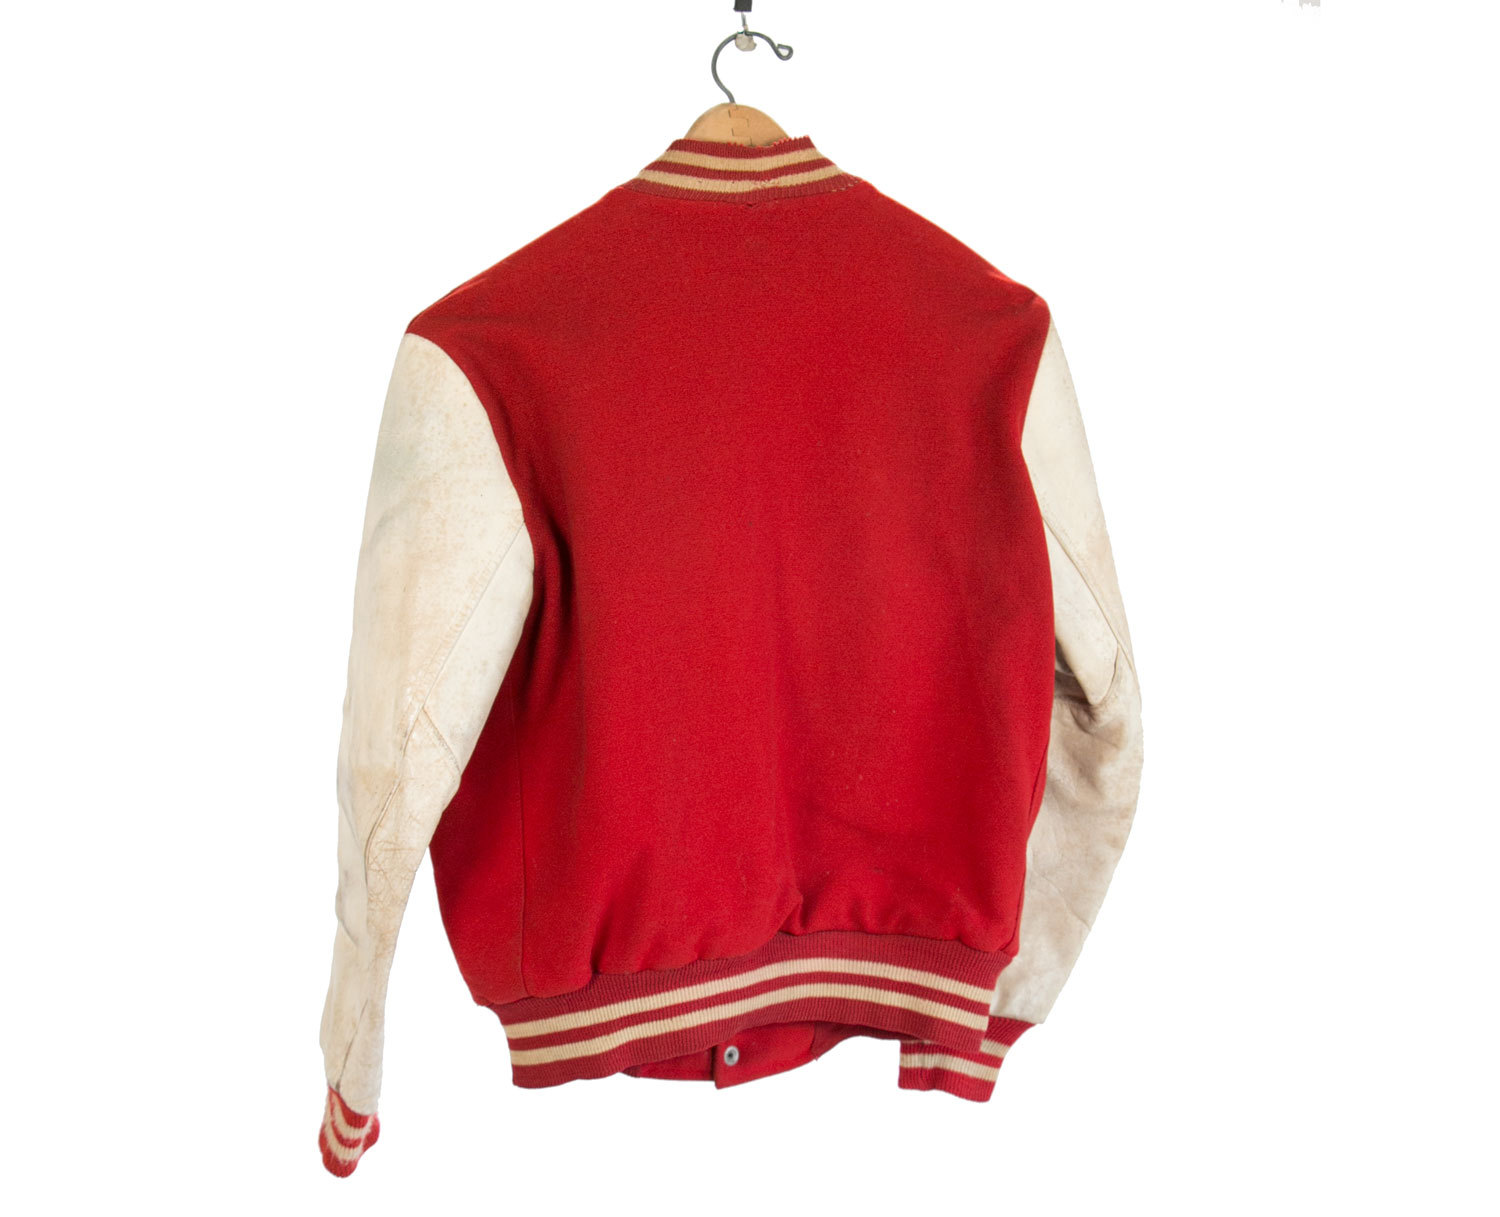 Rare Vintage 1950's Letterman Jacket // Brill Bros FIFTY NINER //  Size 46 // Red & White w Stripes // Retro // USA // Milwaukee // Hipster